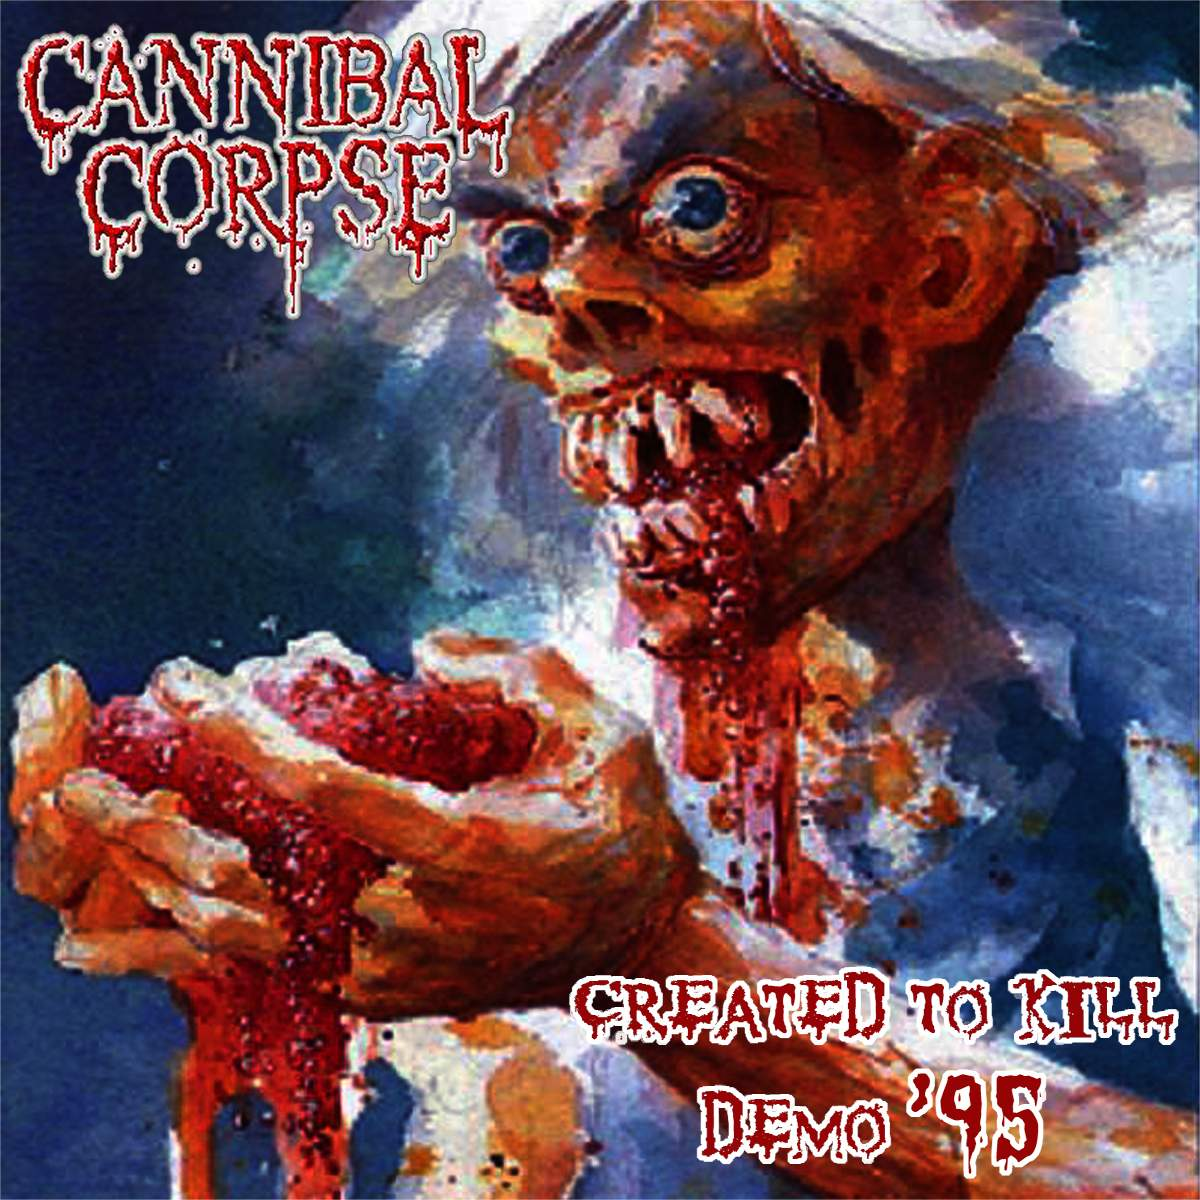 Cannibal Corpse - I Will Kill You + Lyrics Cannibal Corpse ...